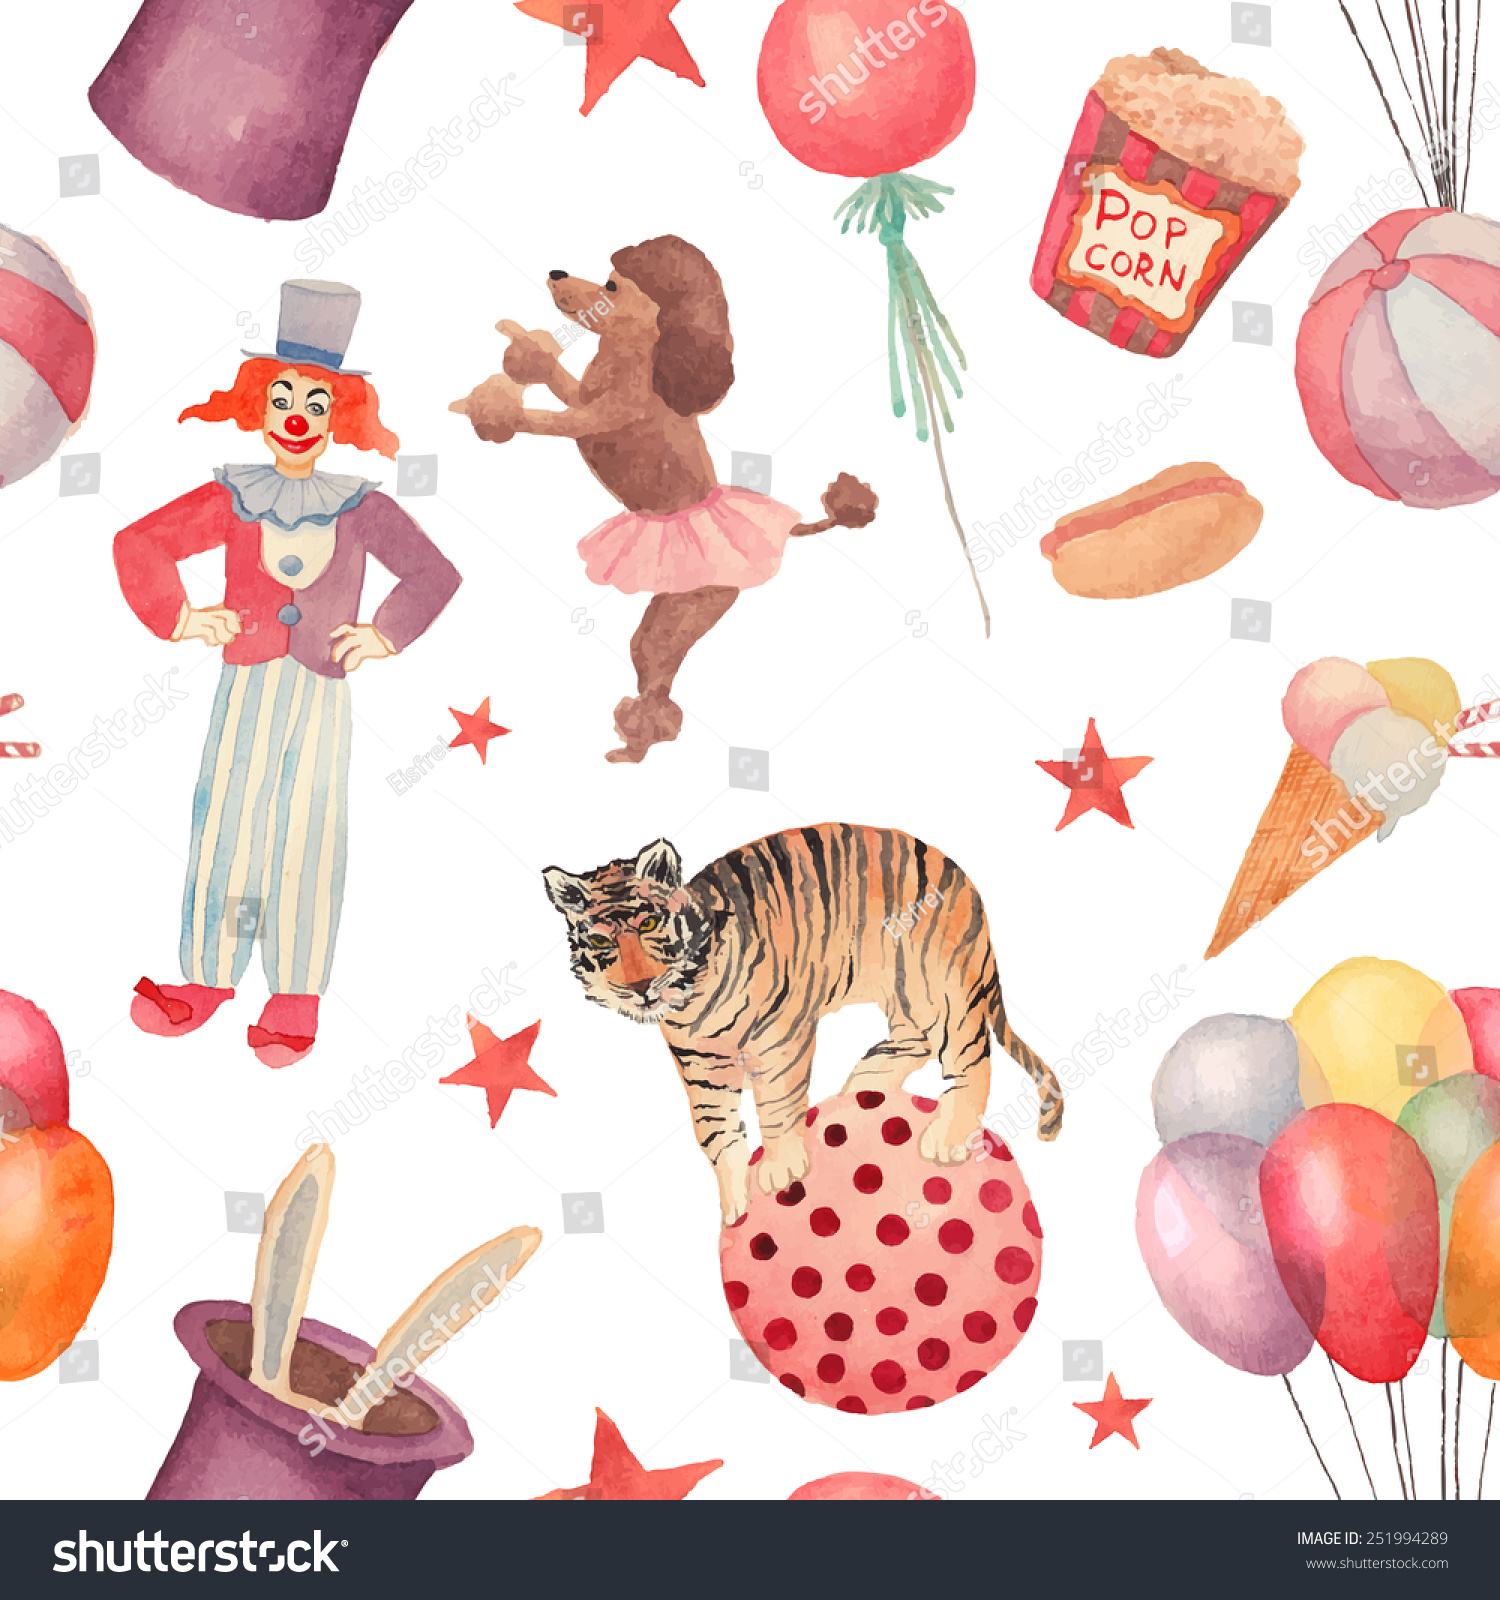 Seamless Pattern With Hand Drawn Watercolor Ice Cream: Watercolor Circus Seamless Pattern Hand Drawn Stock Vector